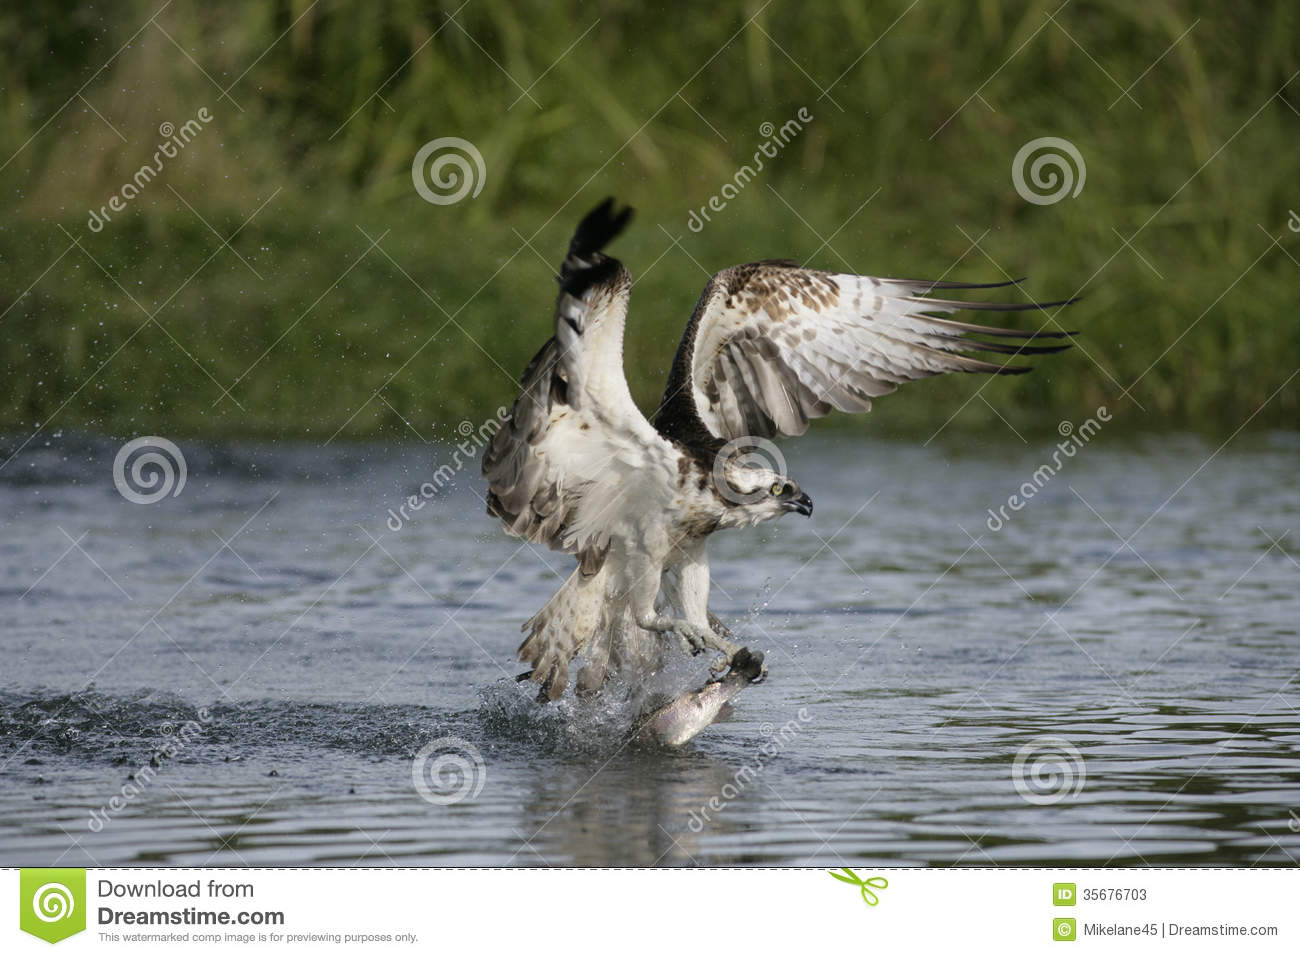 osprey divorced singles personals Others start dating right away, as a distraction or to combat feelings of loneliness and in some cases, an affair triggered the divorce from a legal perspective, it's best to.